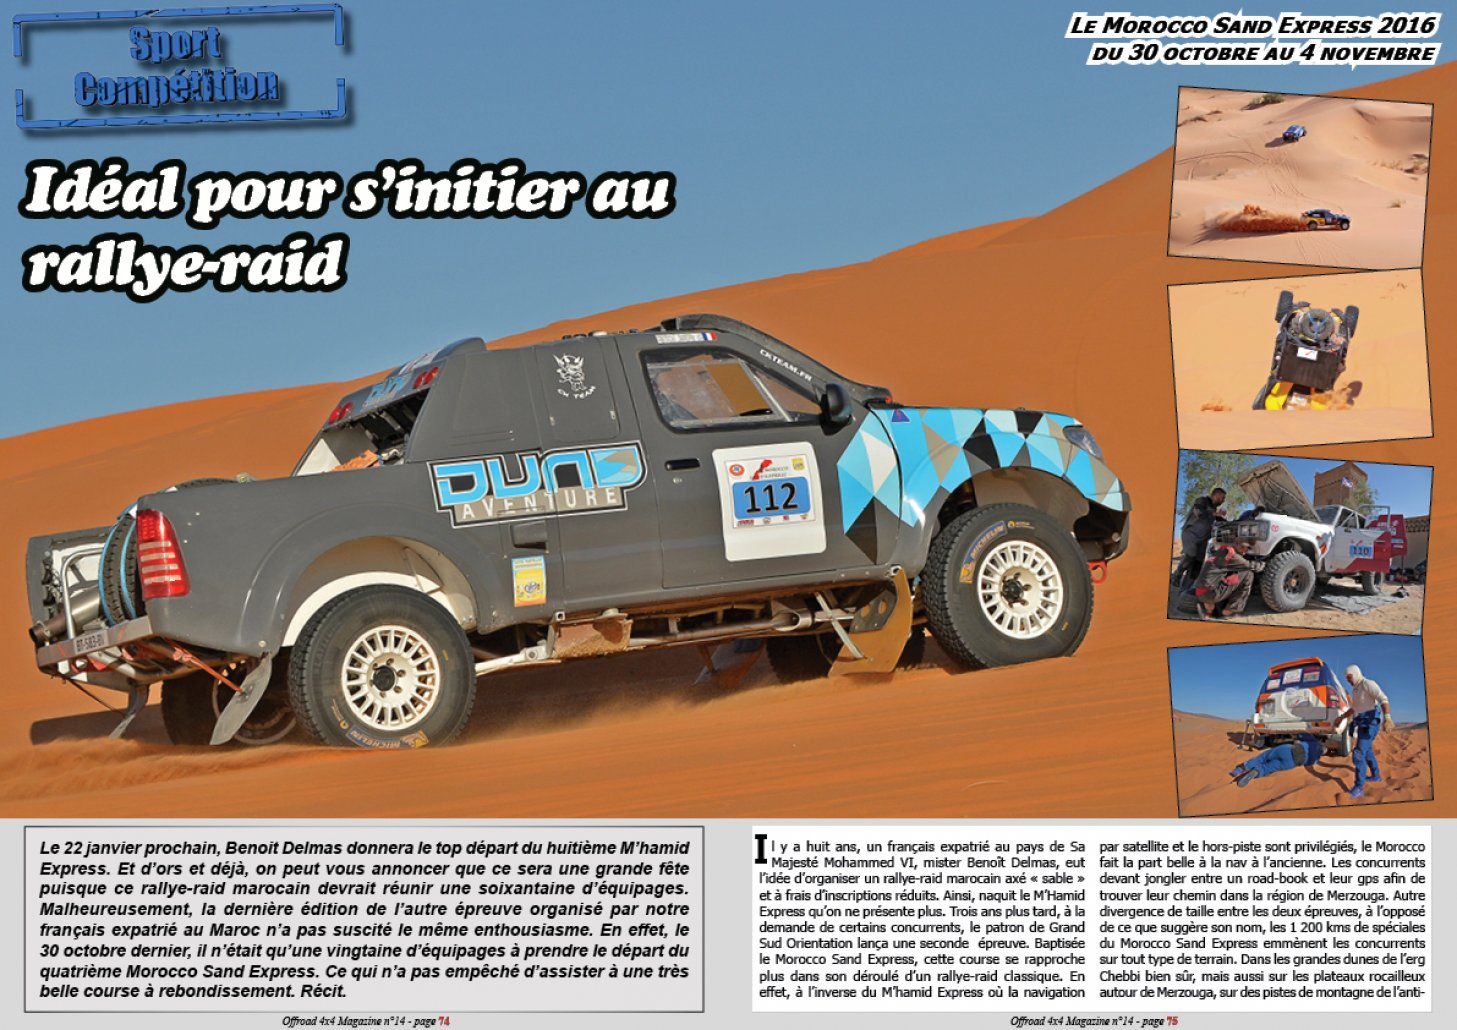 Le Morocco Sand Express